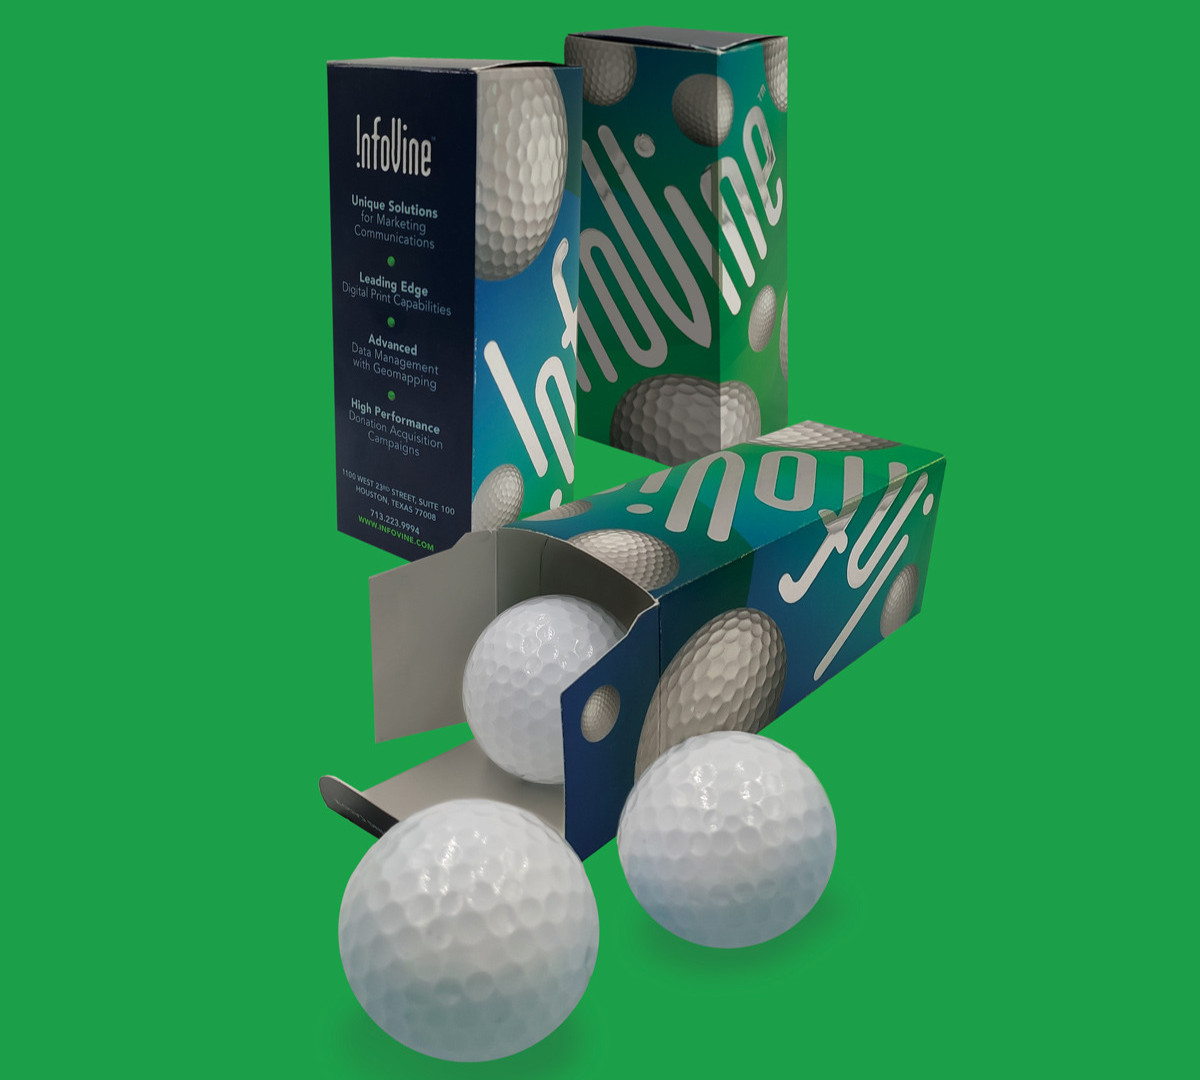 golfball-box-green_edited.jpg